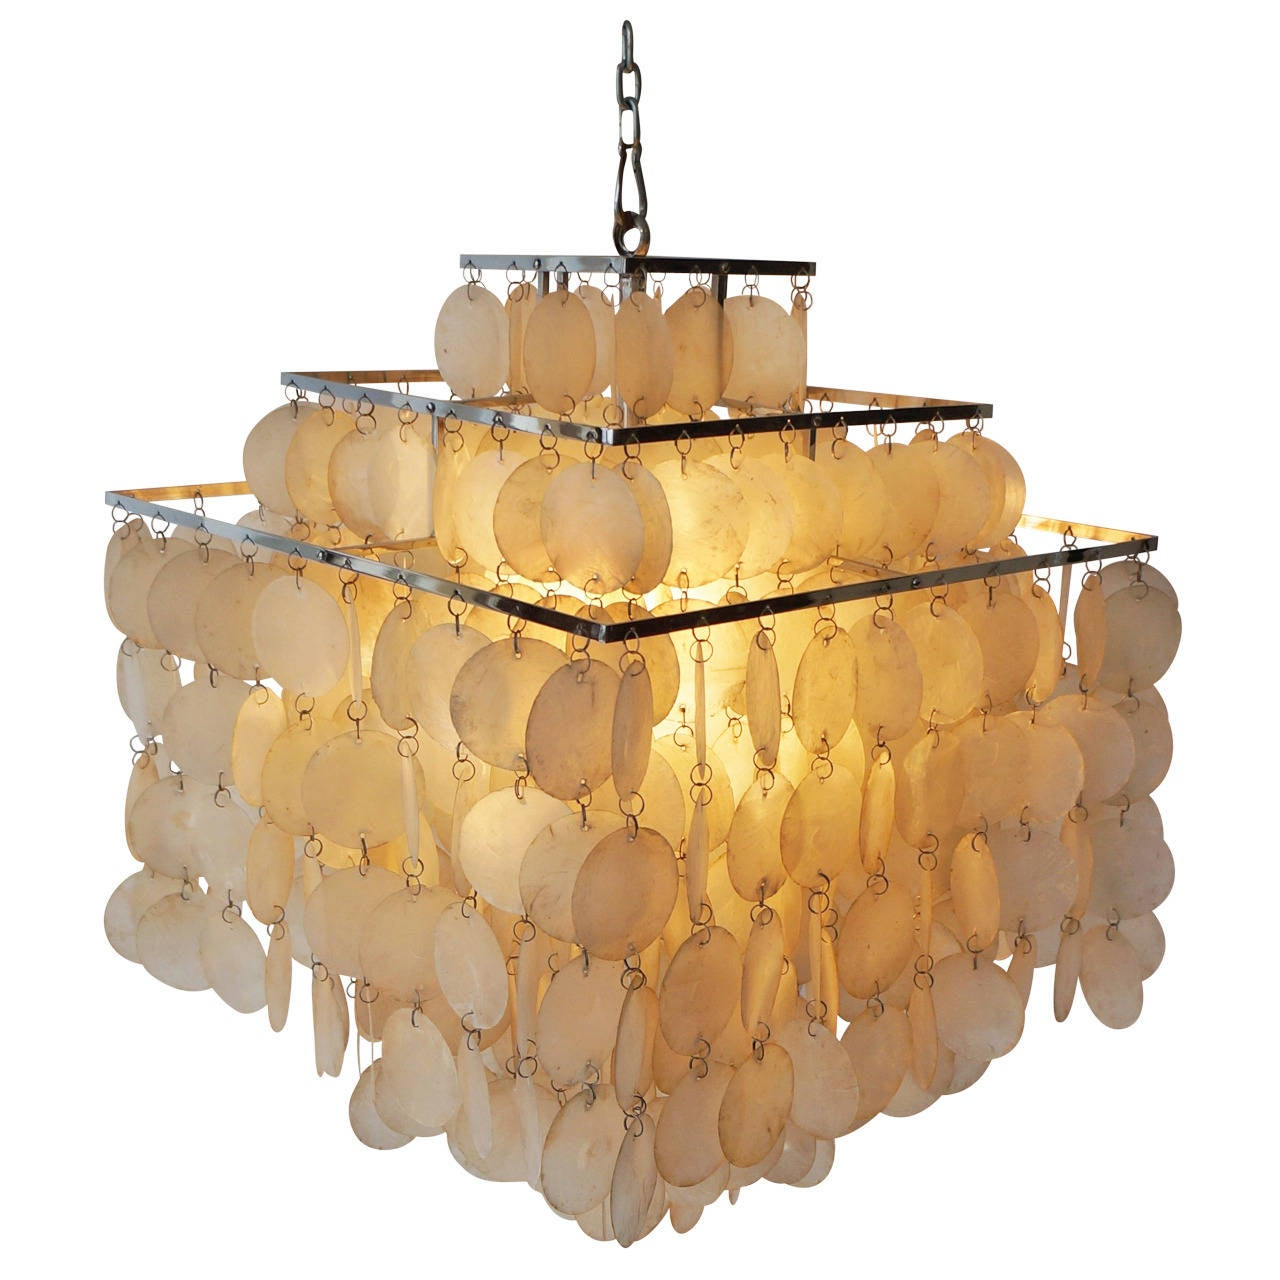 Shell Chandeliers Lighting : Capiz shell chandelier by verner panton for sale at stdibs